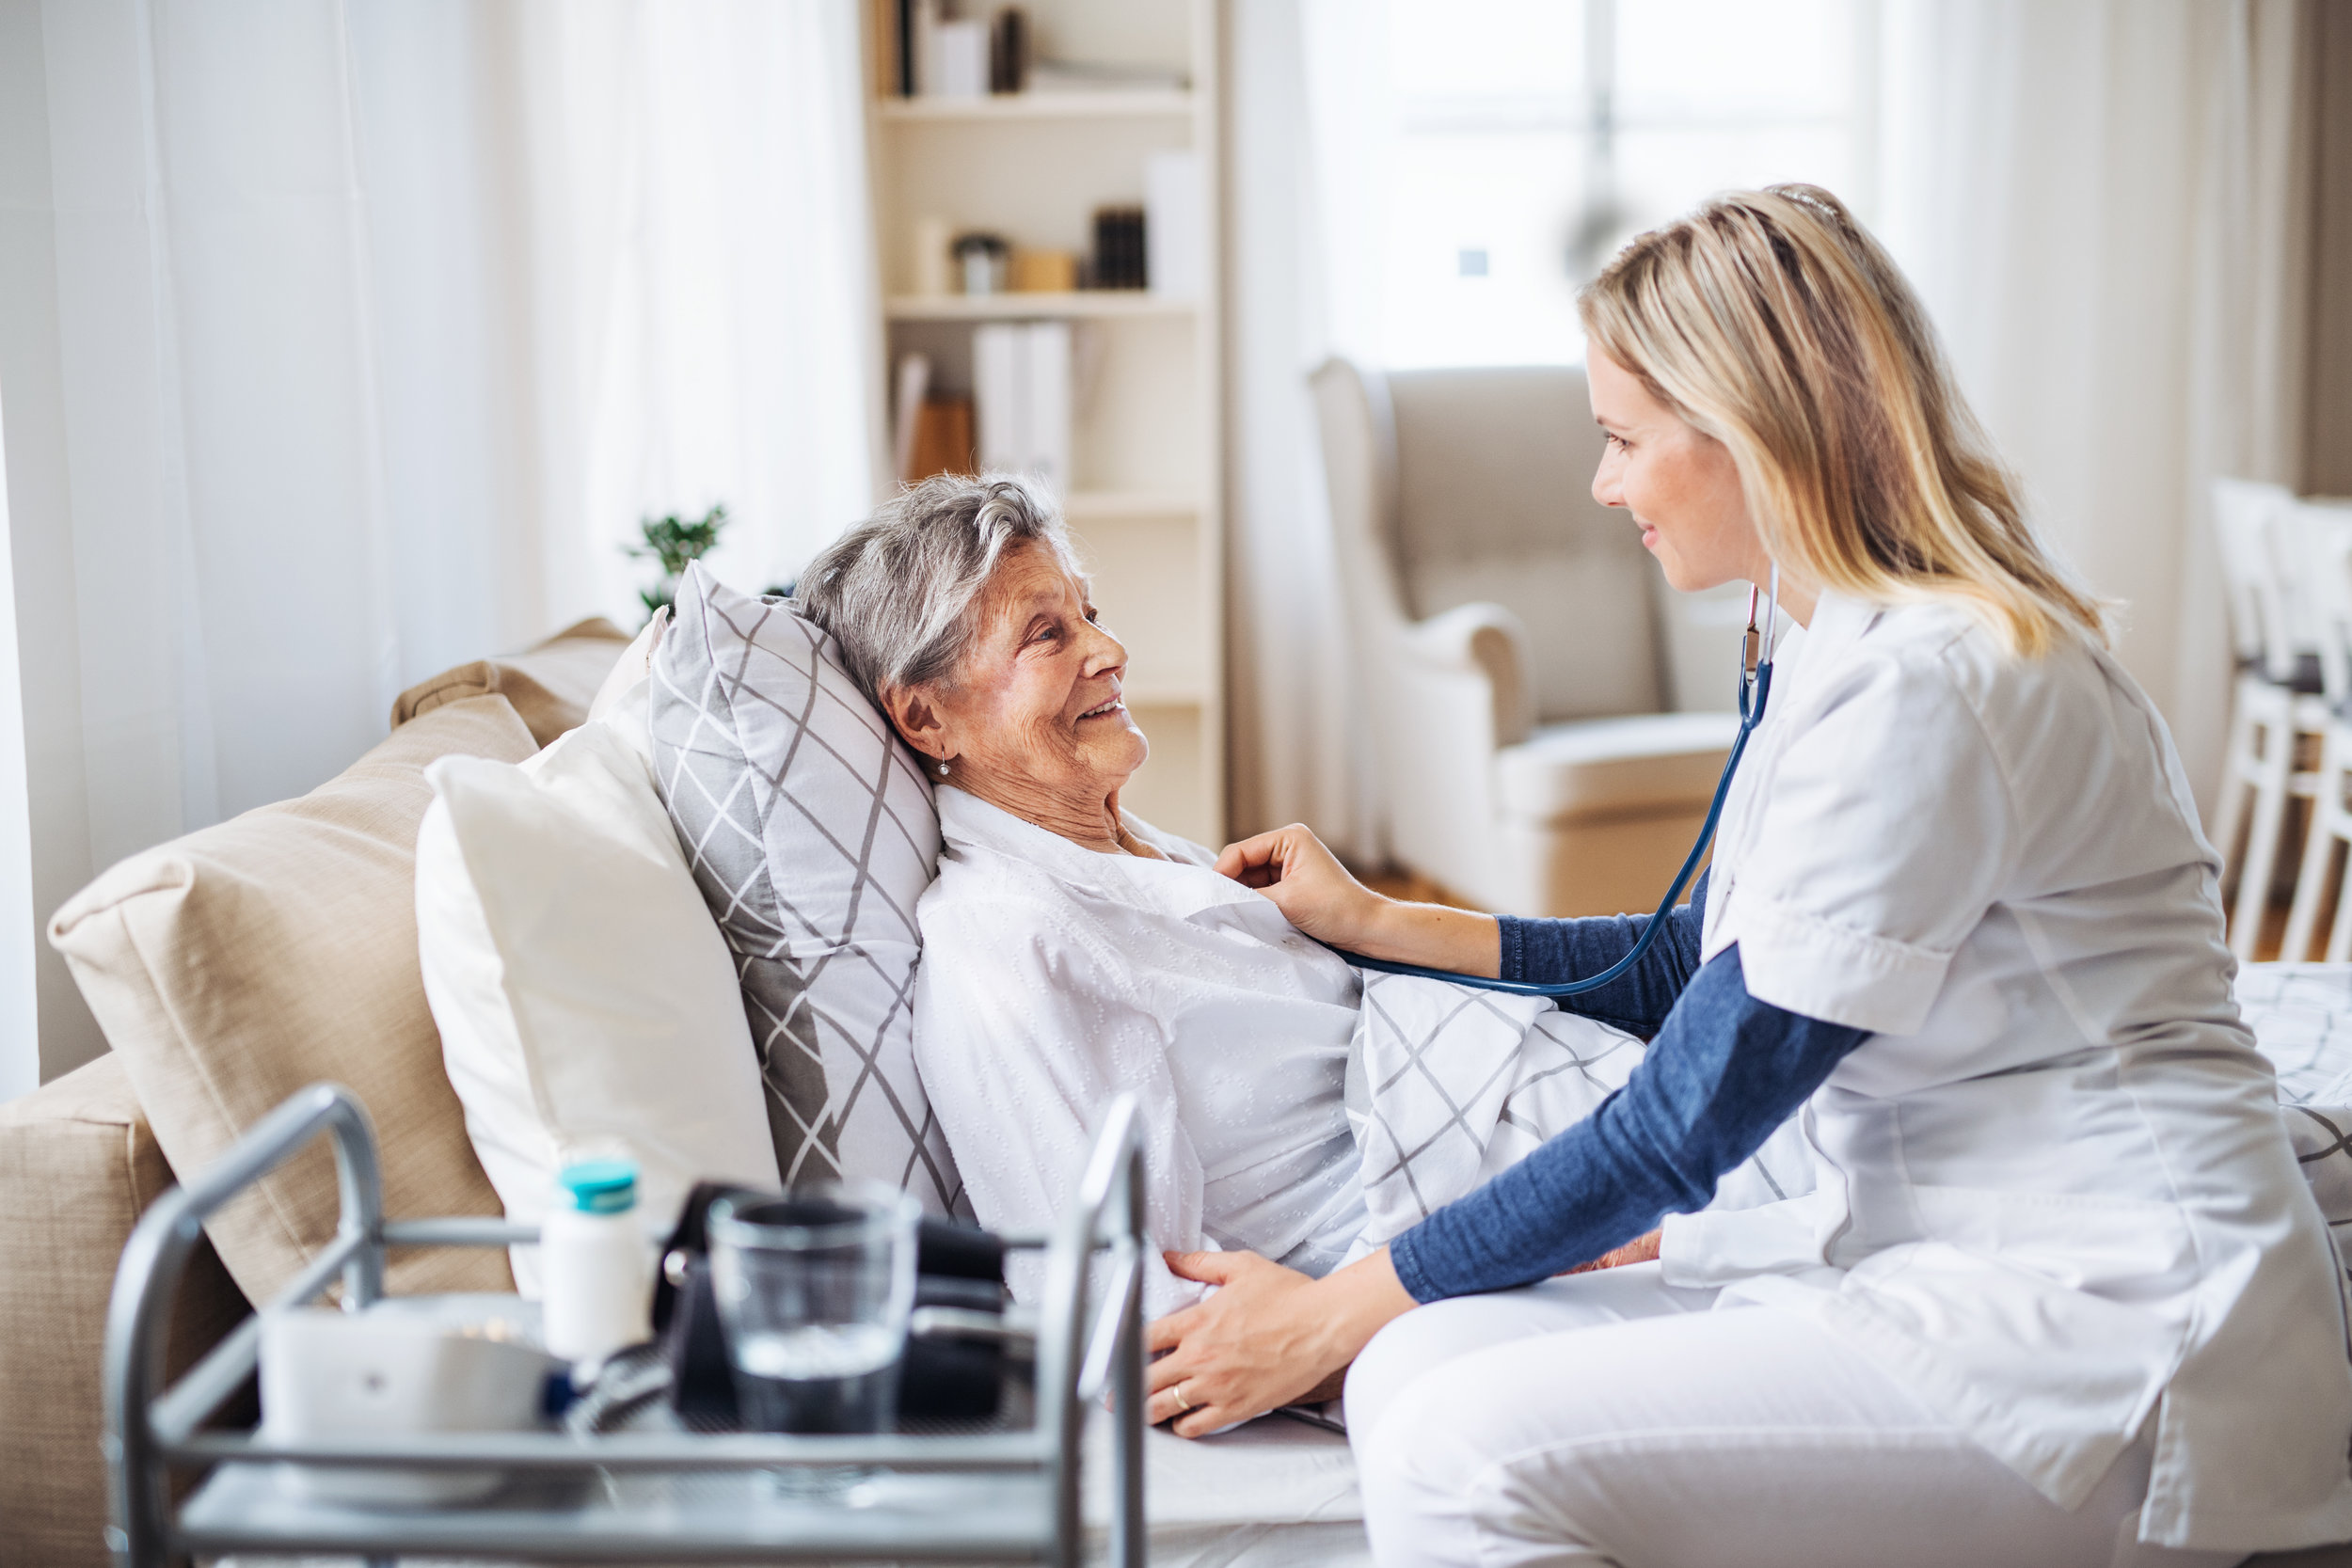 Home Health - AptusCare offers solutions to streamline care even in the comfort of the patients' home.